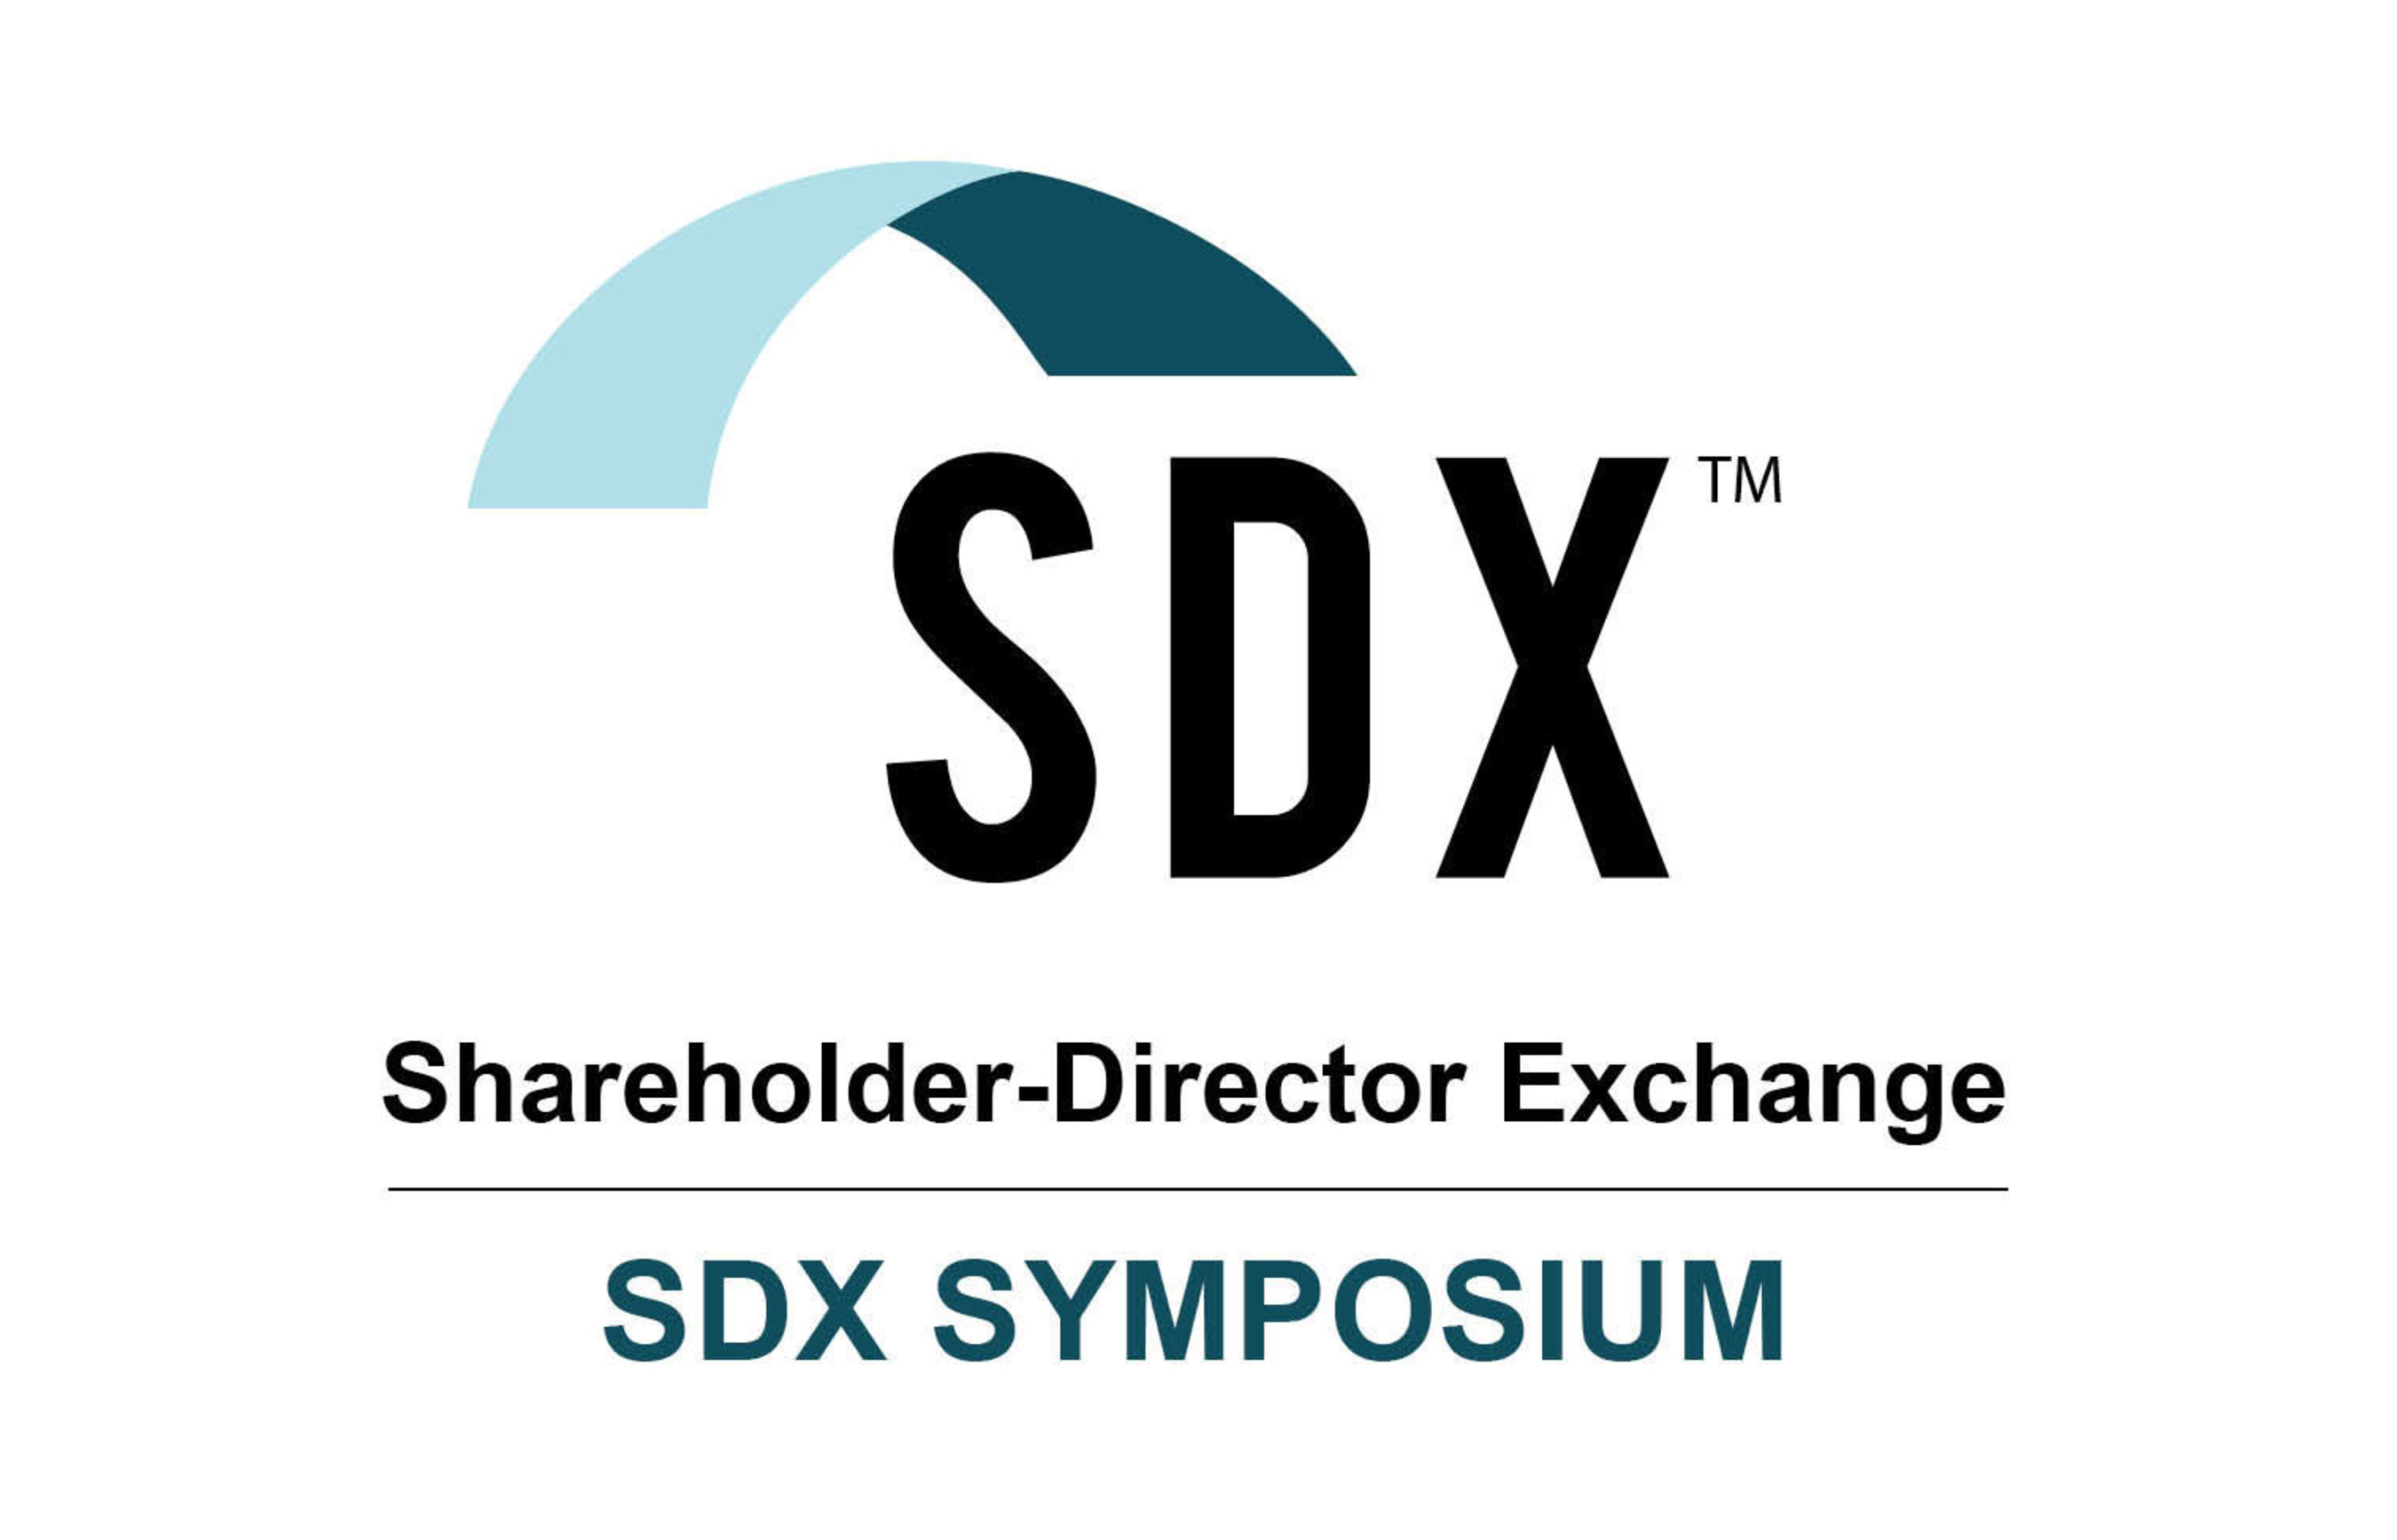 Cadwalader and Tapestry Host 2nd Annual Shareholder-Director Exchange (SDX) Symposium